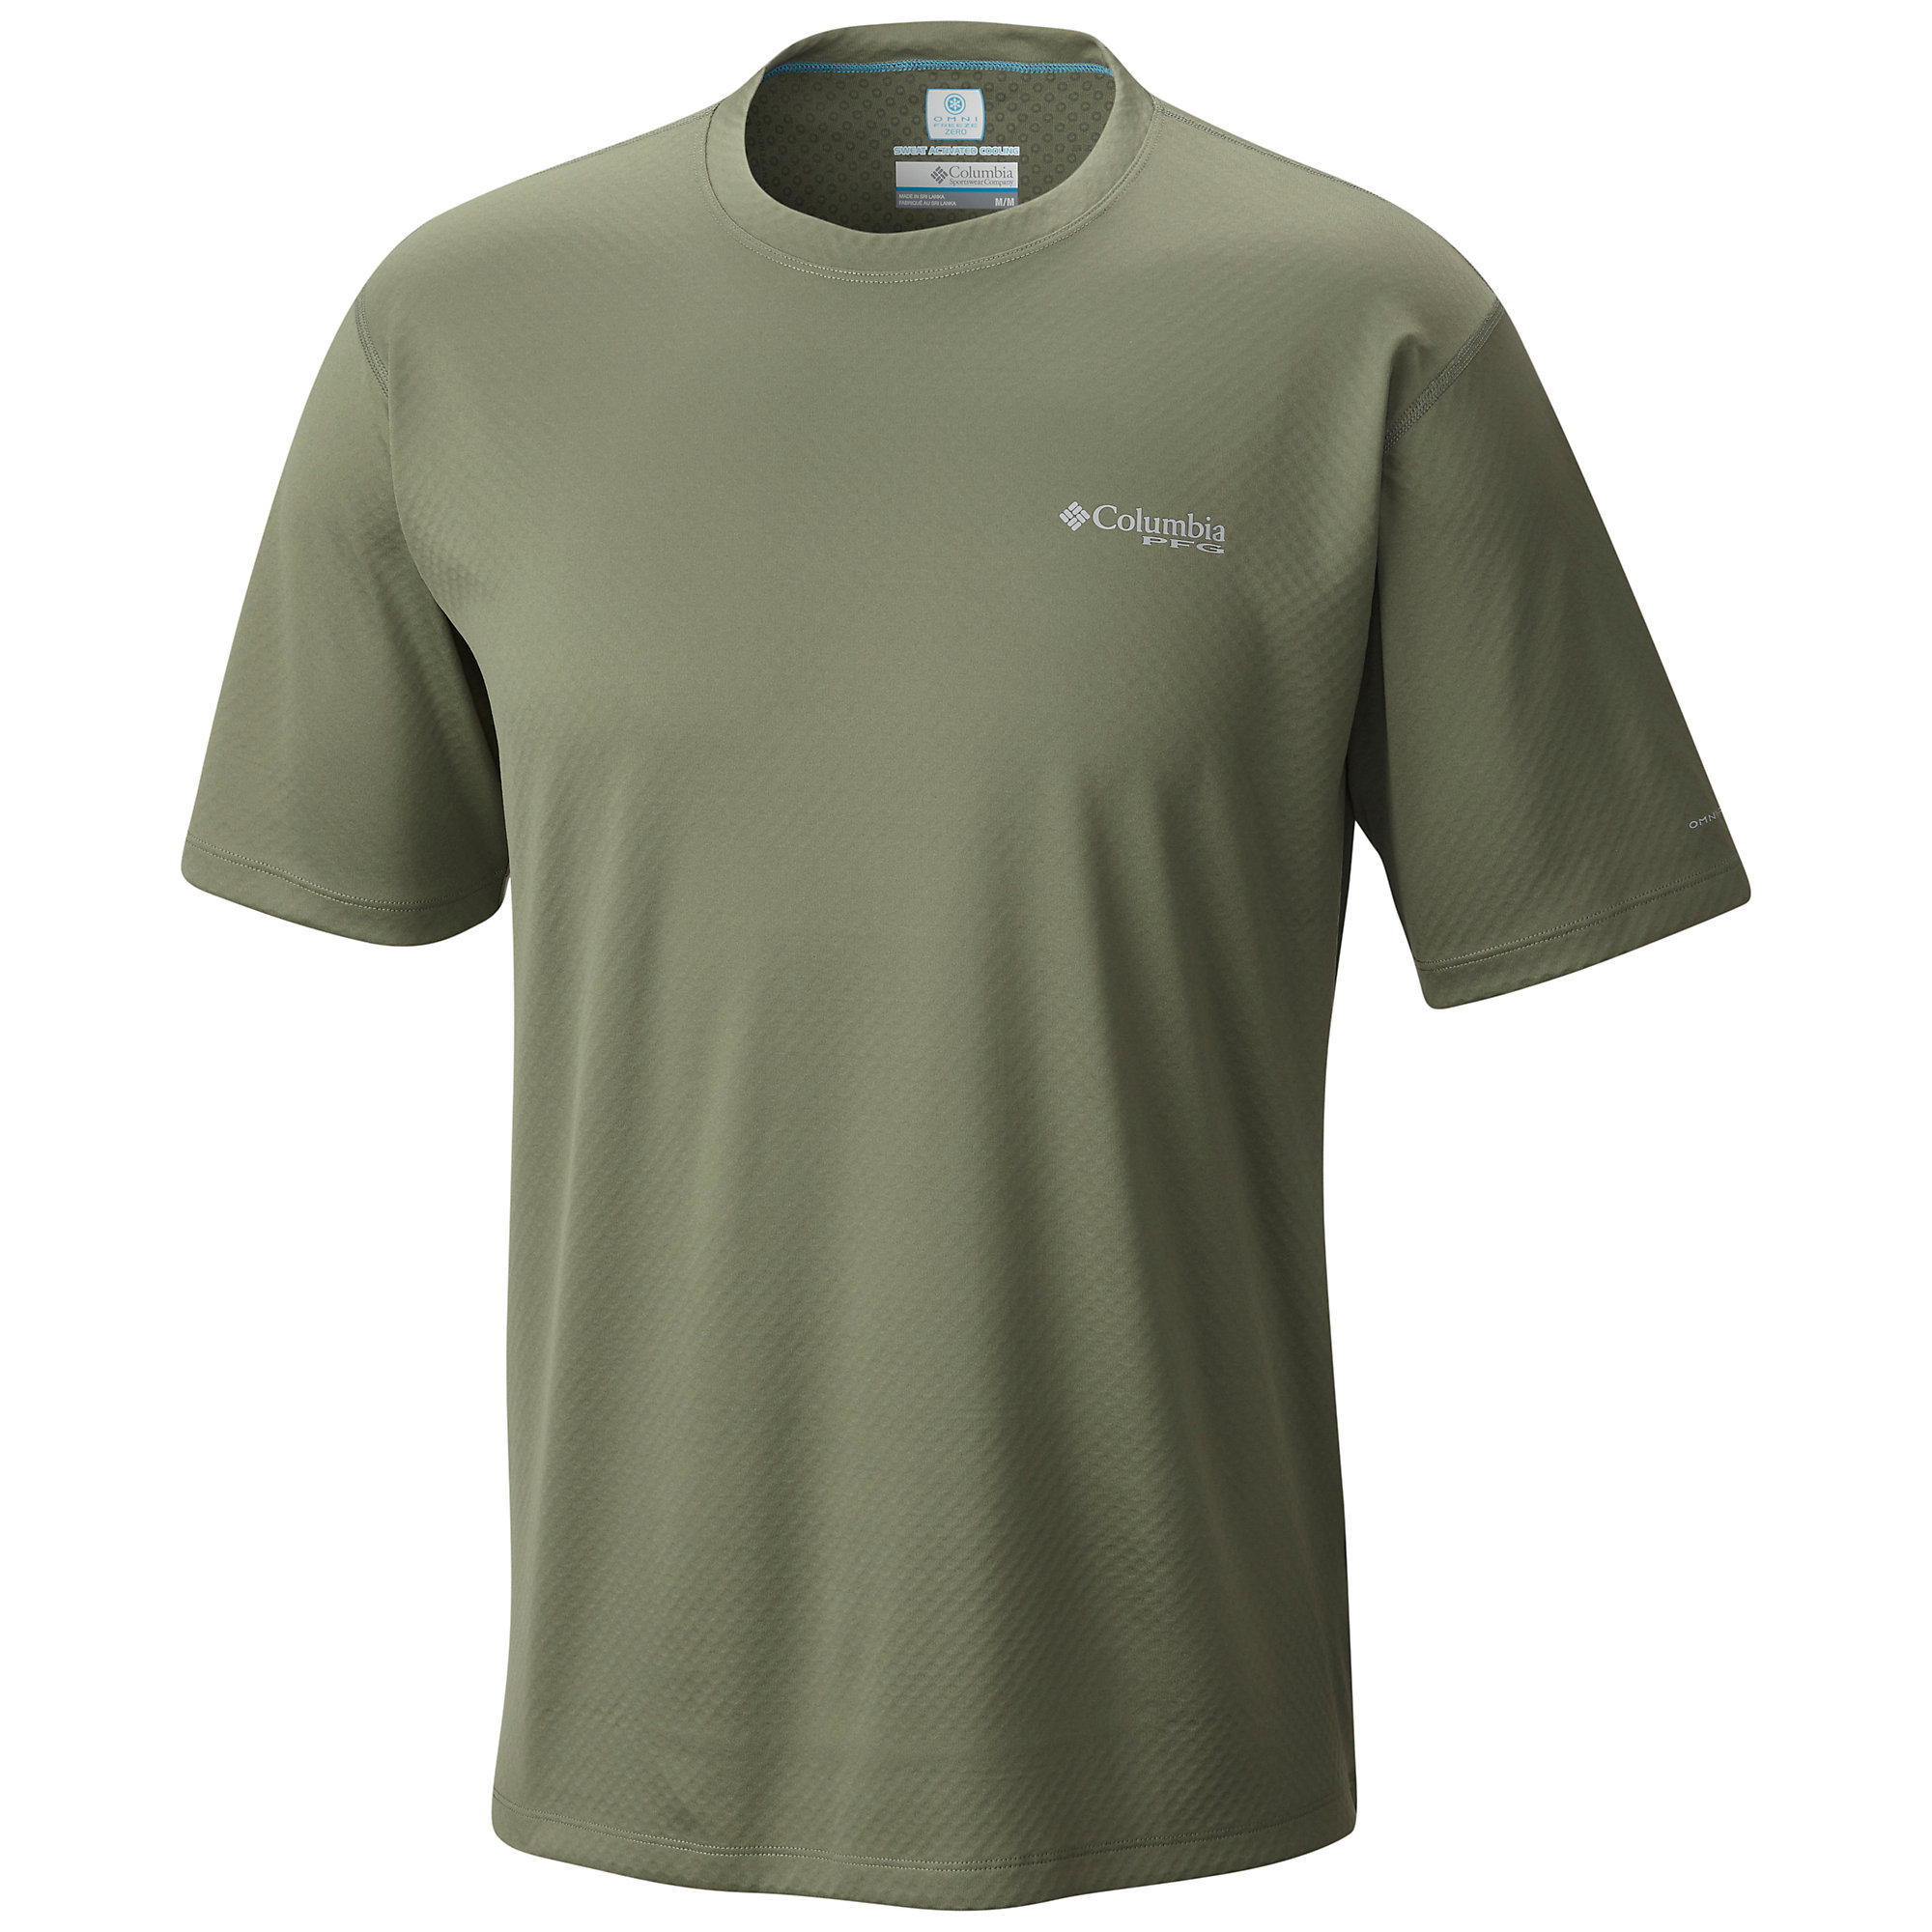 Columbia PFG Zero Rules Short Sleeve Shirt